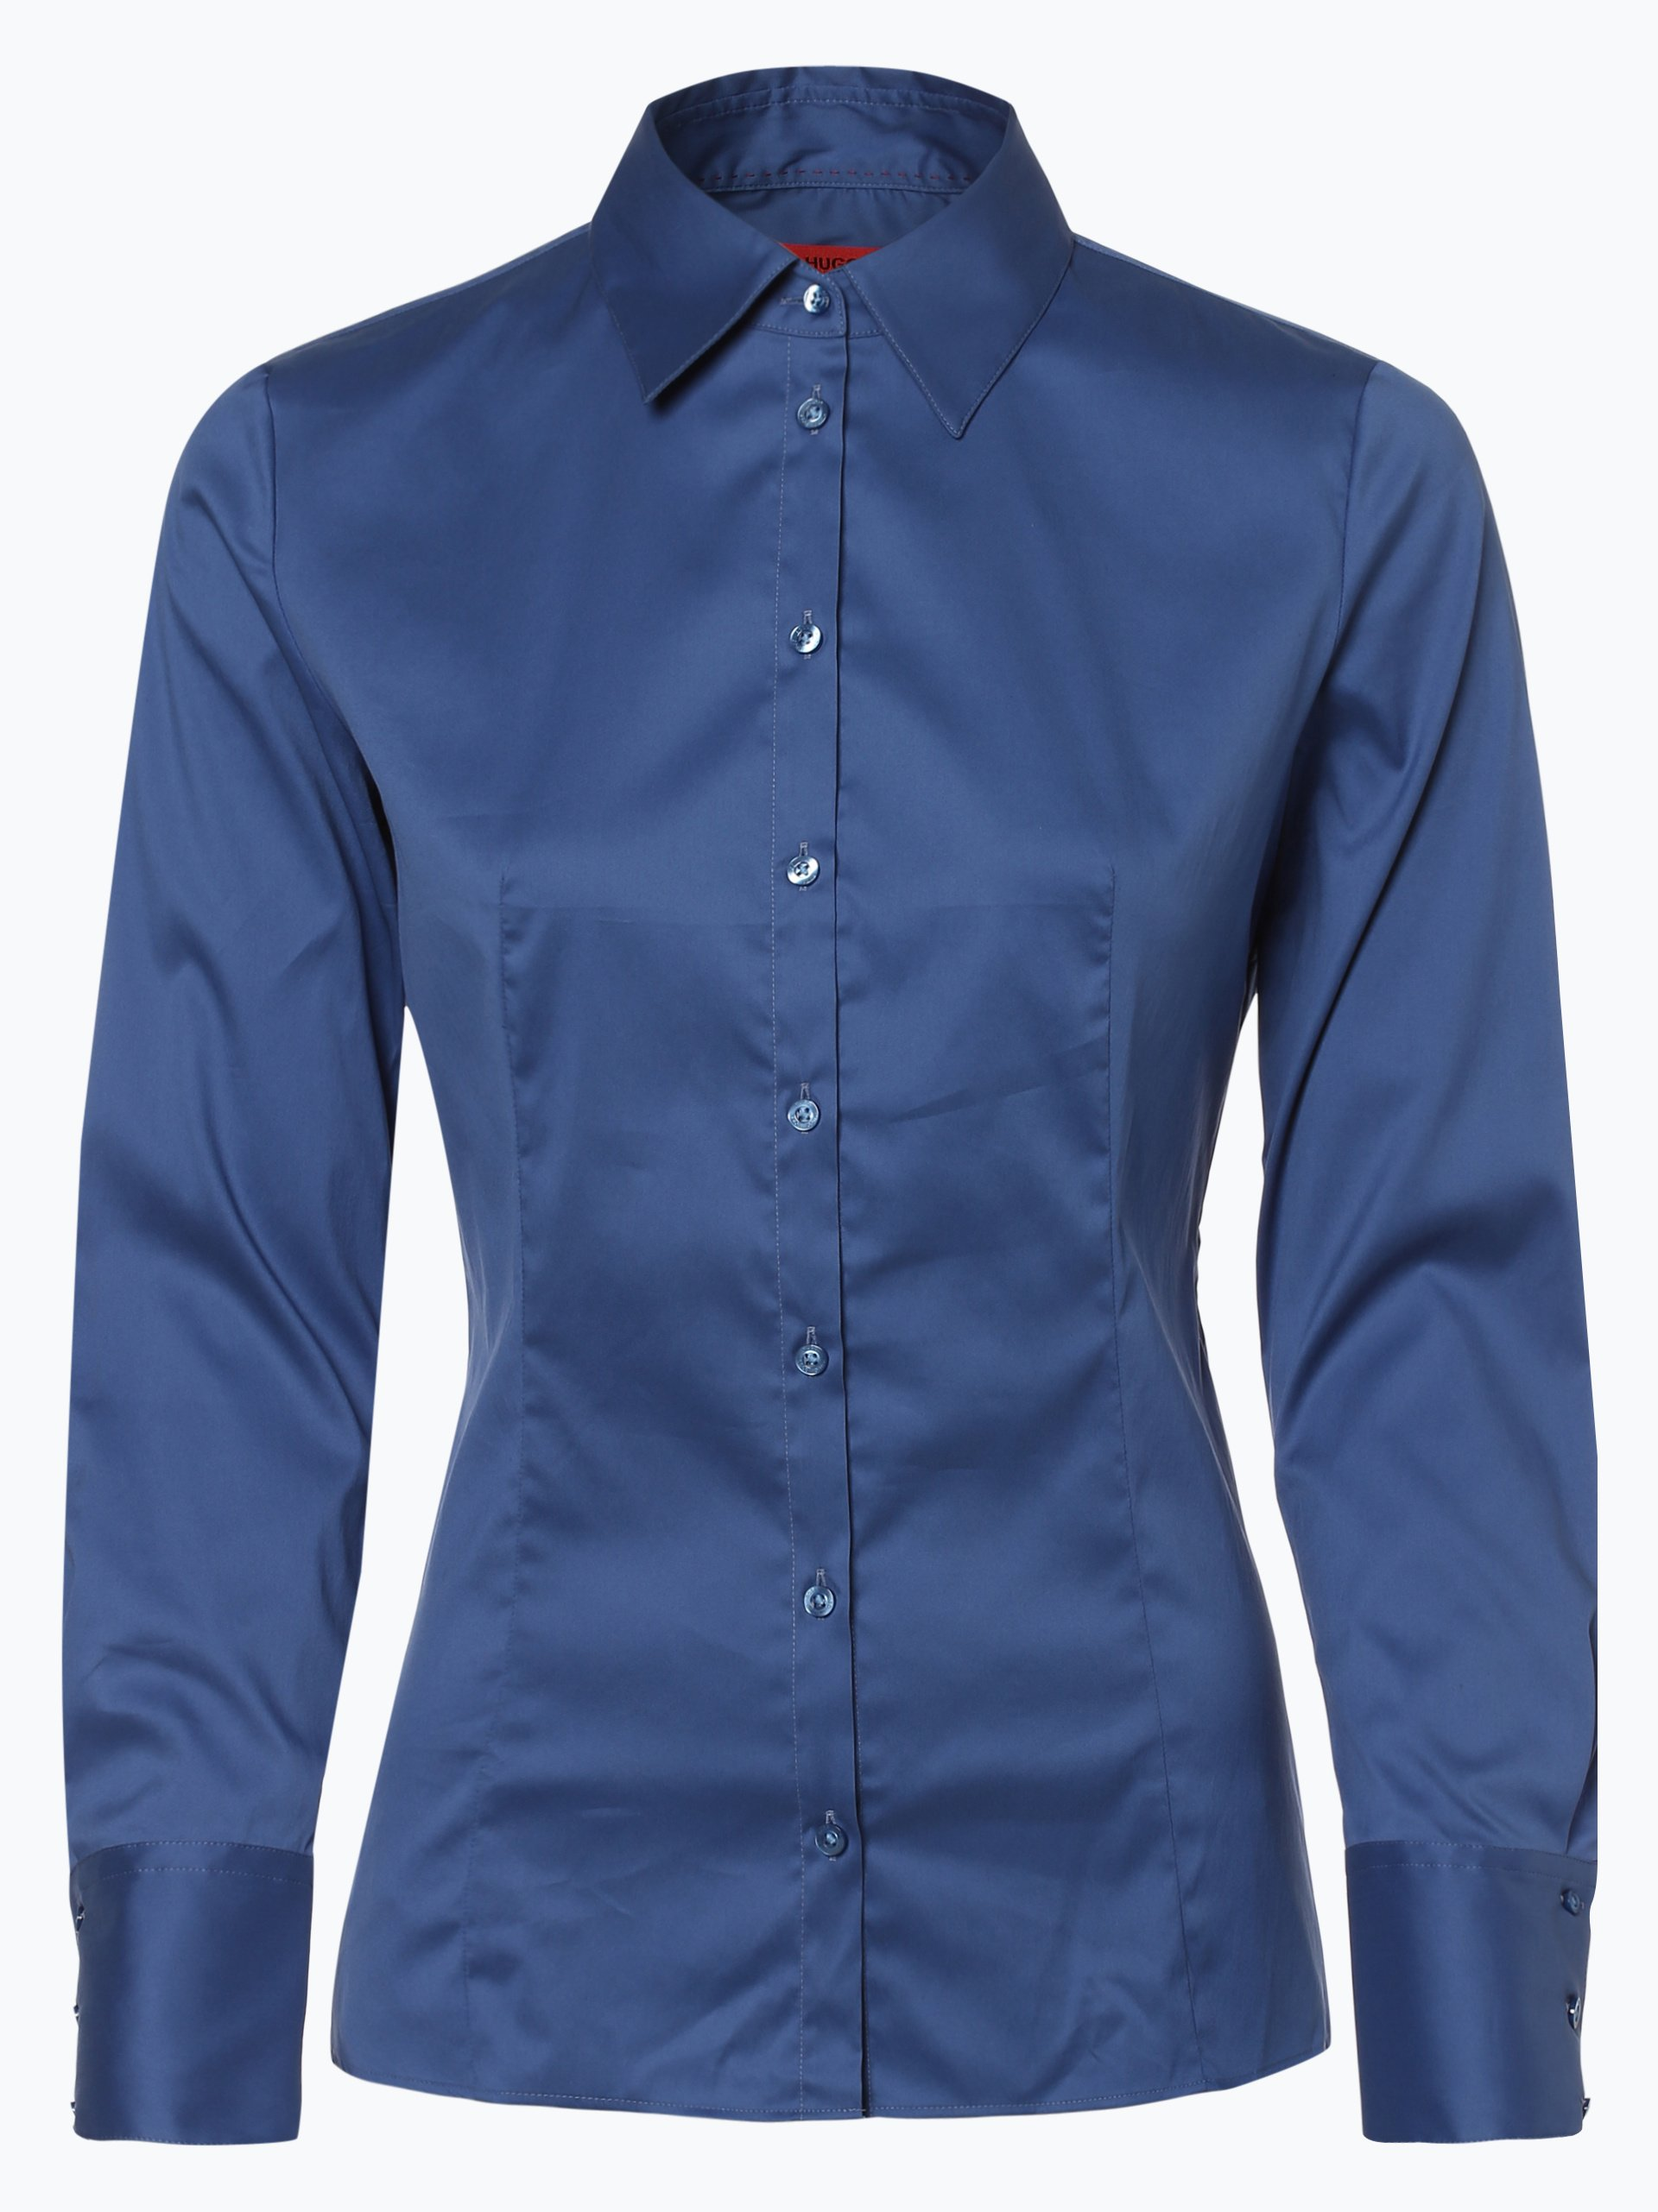 HUGO Damen Bluse - The Fitted Shirt